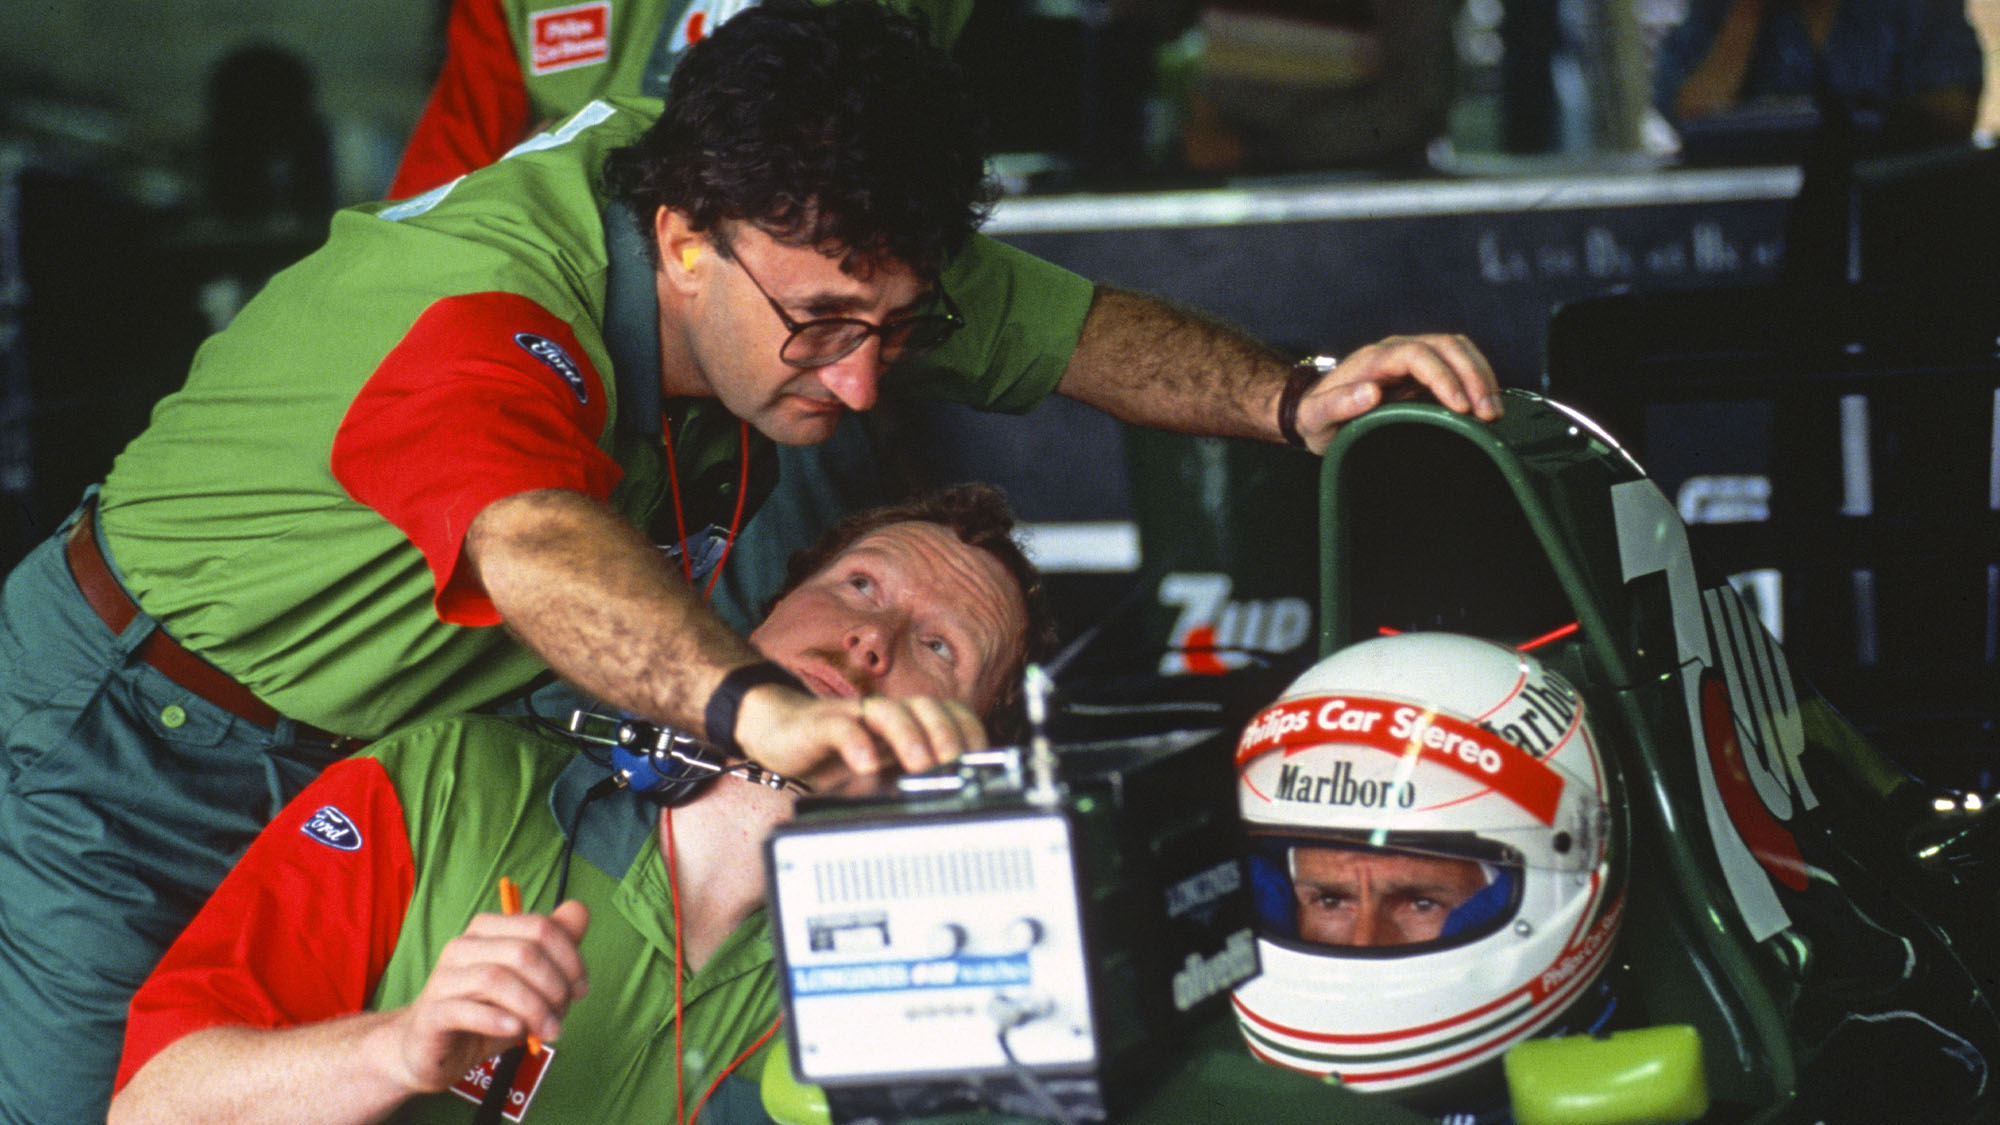 Jordan-Ford team principal Eddie Jordn, team manager Trevor Foster and Andrea de Cesaris in the pits during practice for the 1991 Brazilian Grand Prix in Interlagos. Photo: Grand Prix Photo